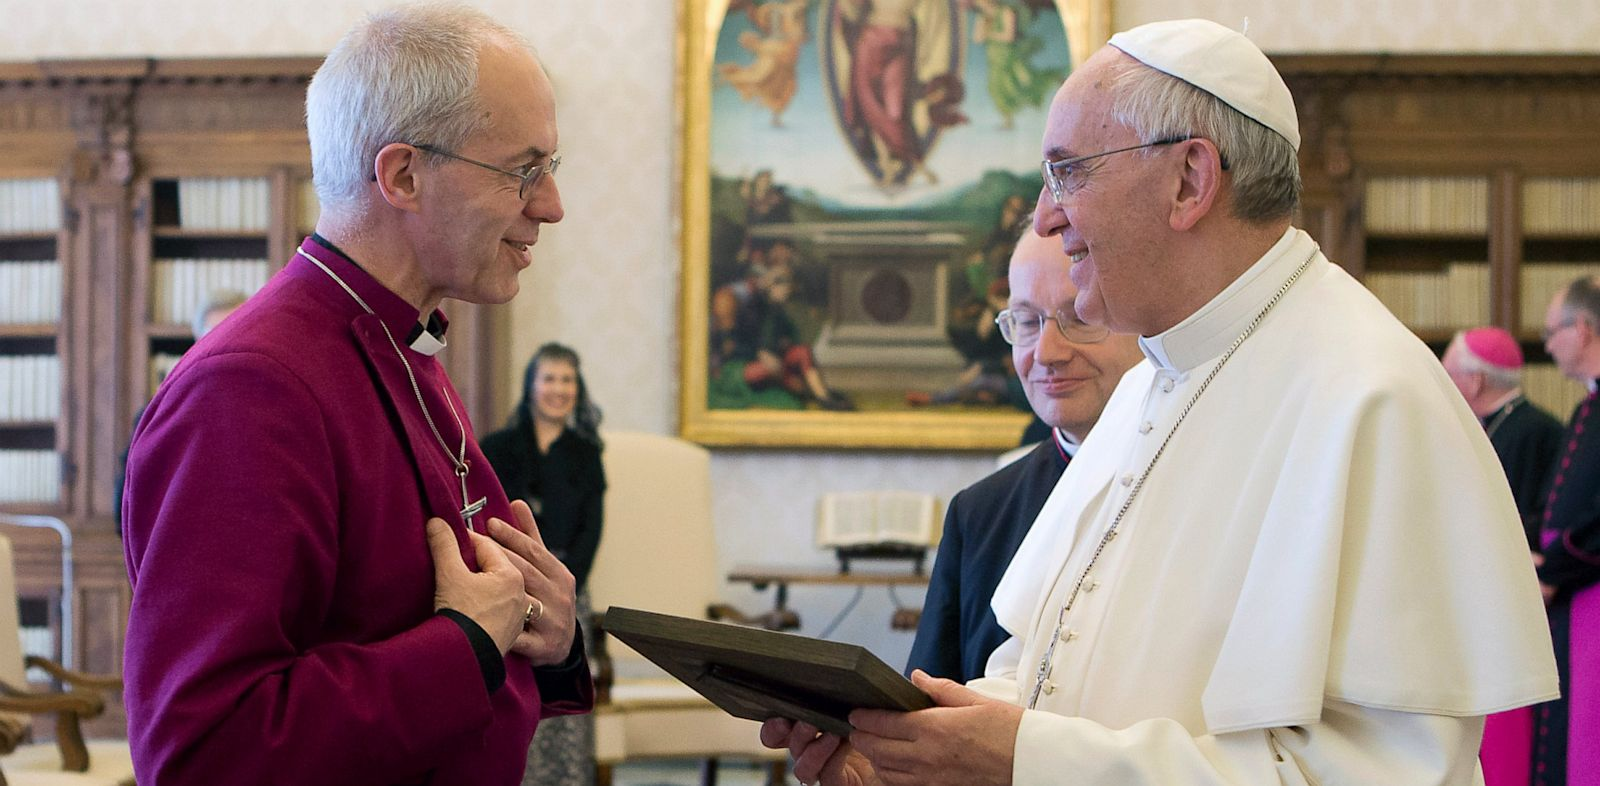 PHOTO: Justin Welby and Pope Francis